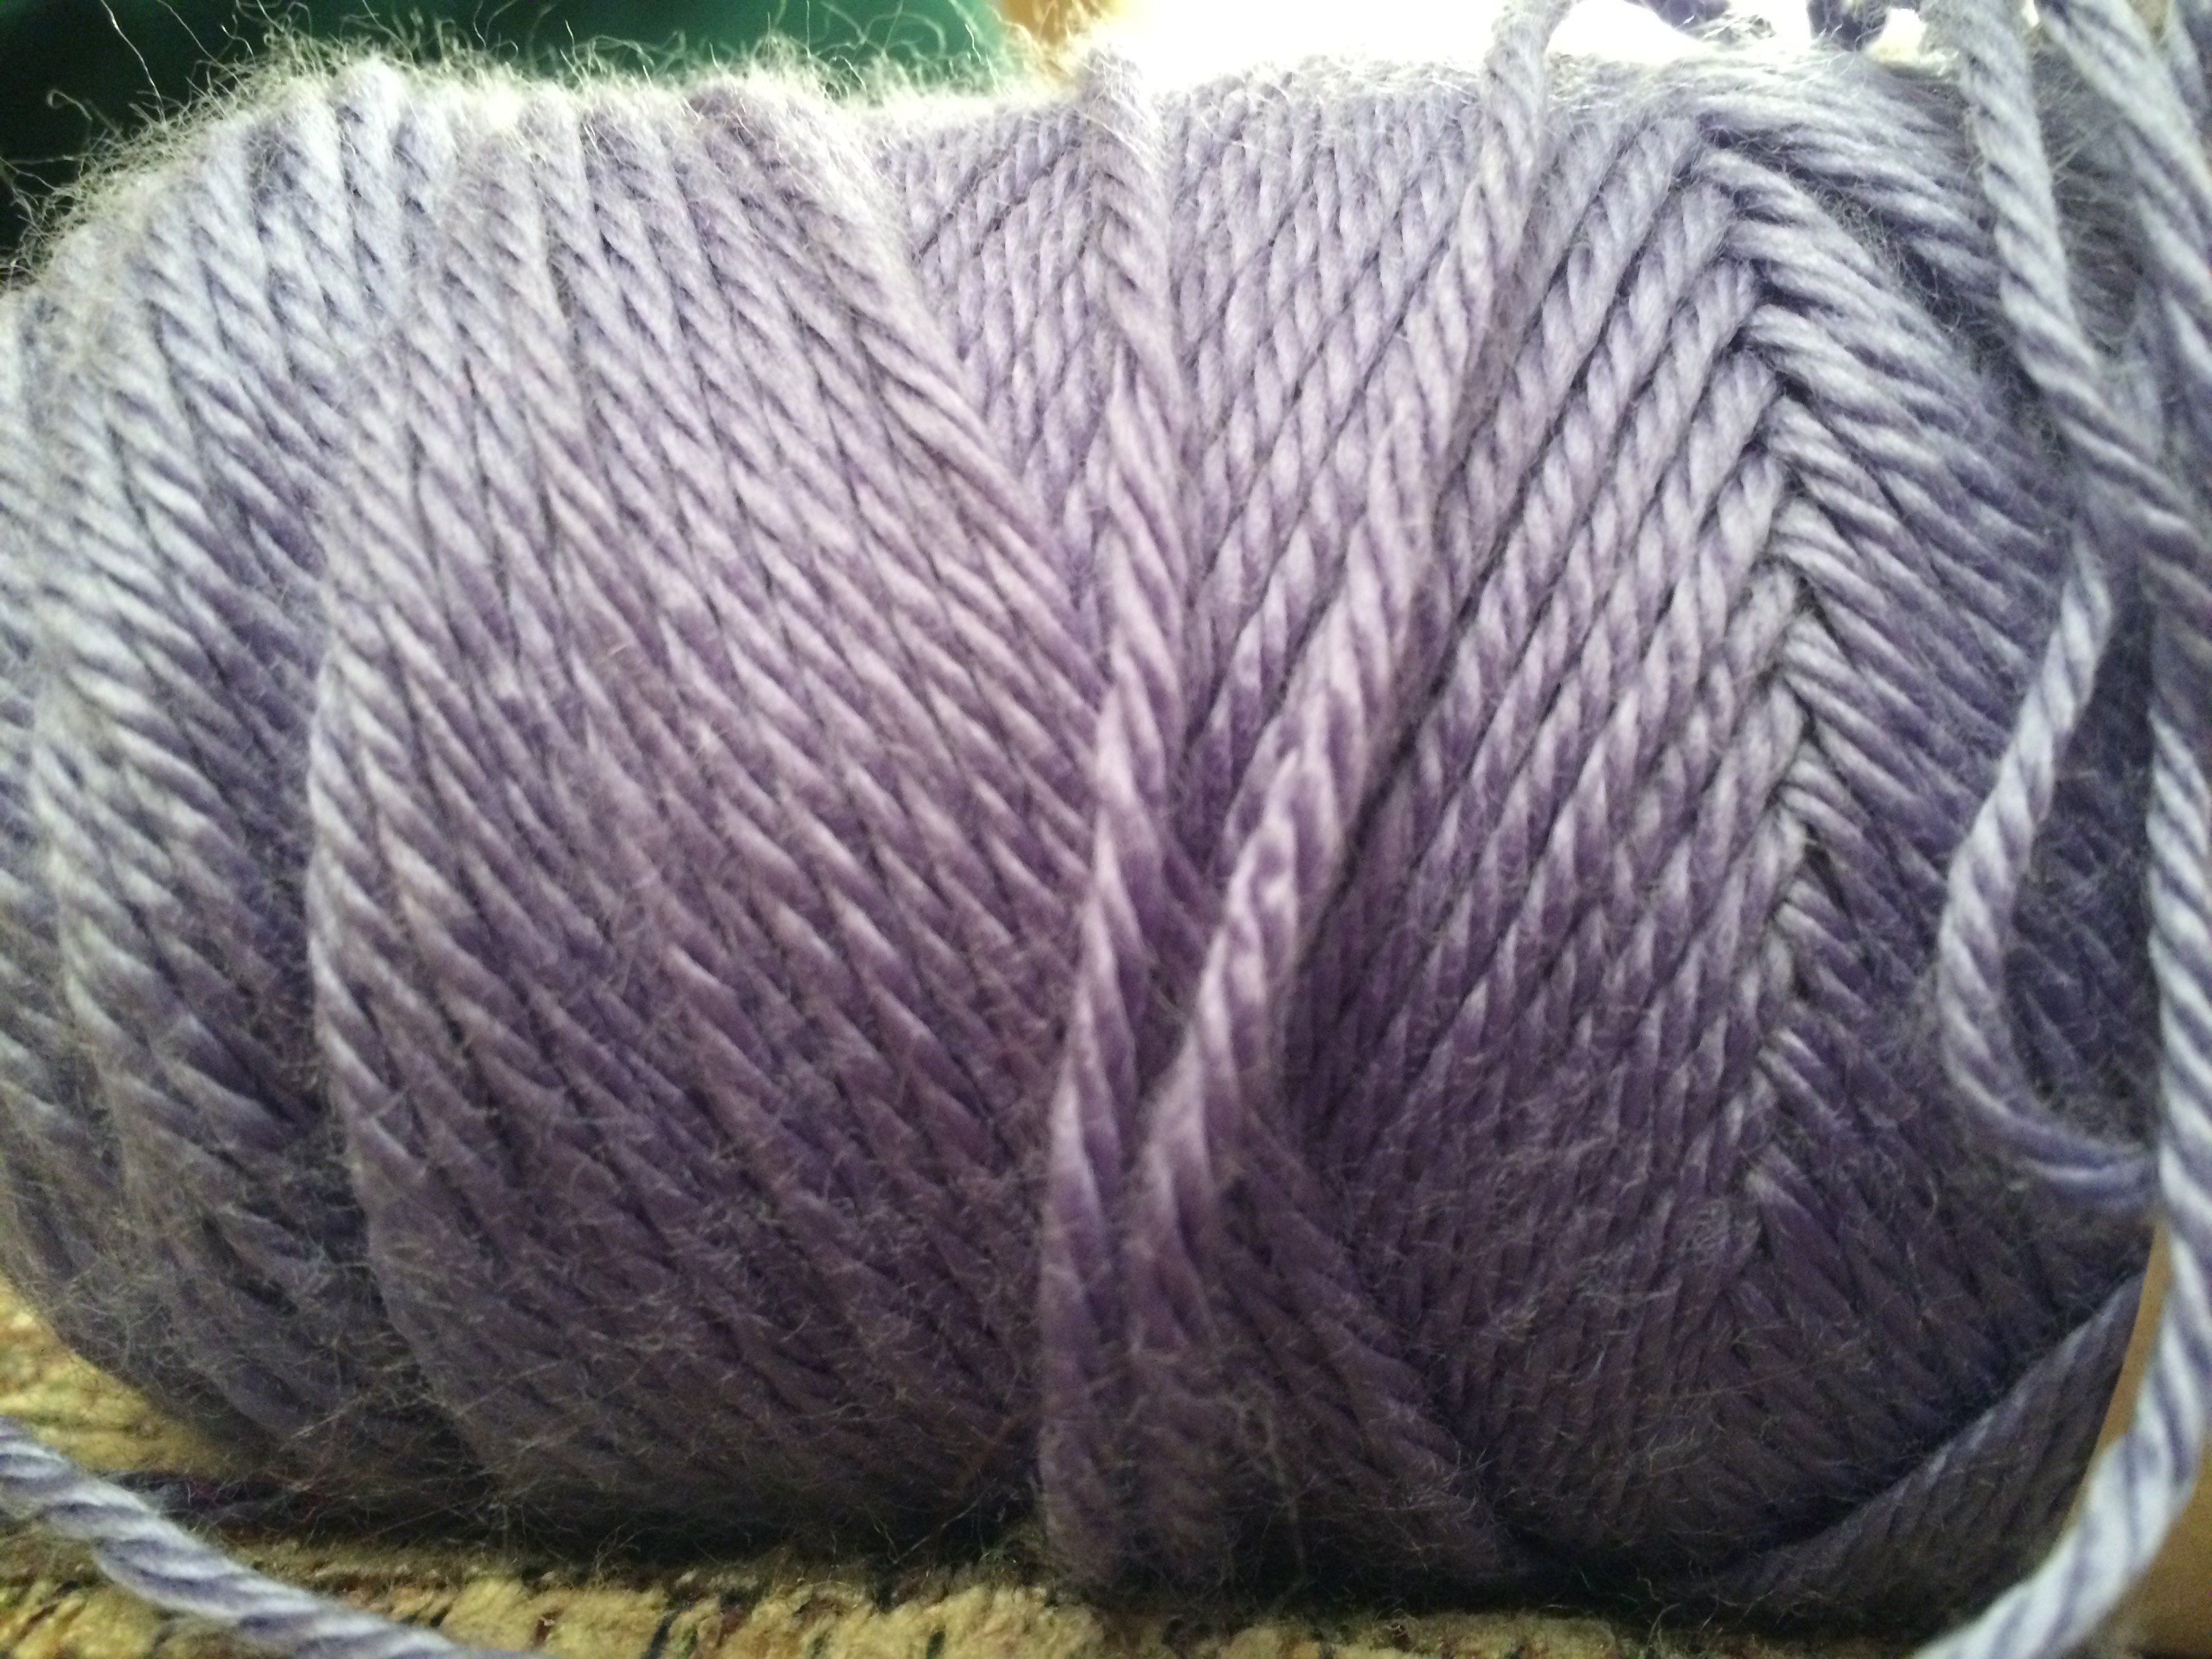 Purple Yarn. Photo by Jenn Dixon.